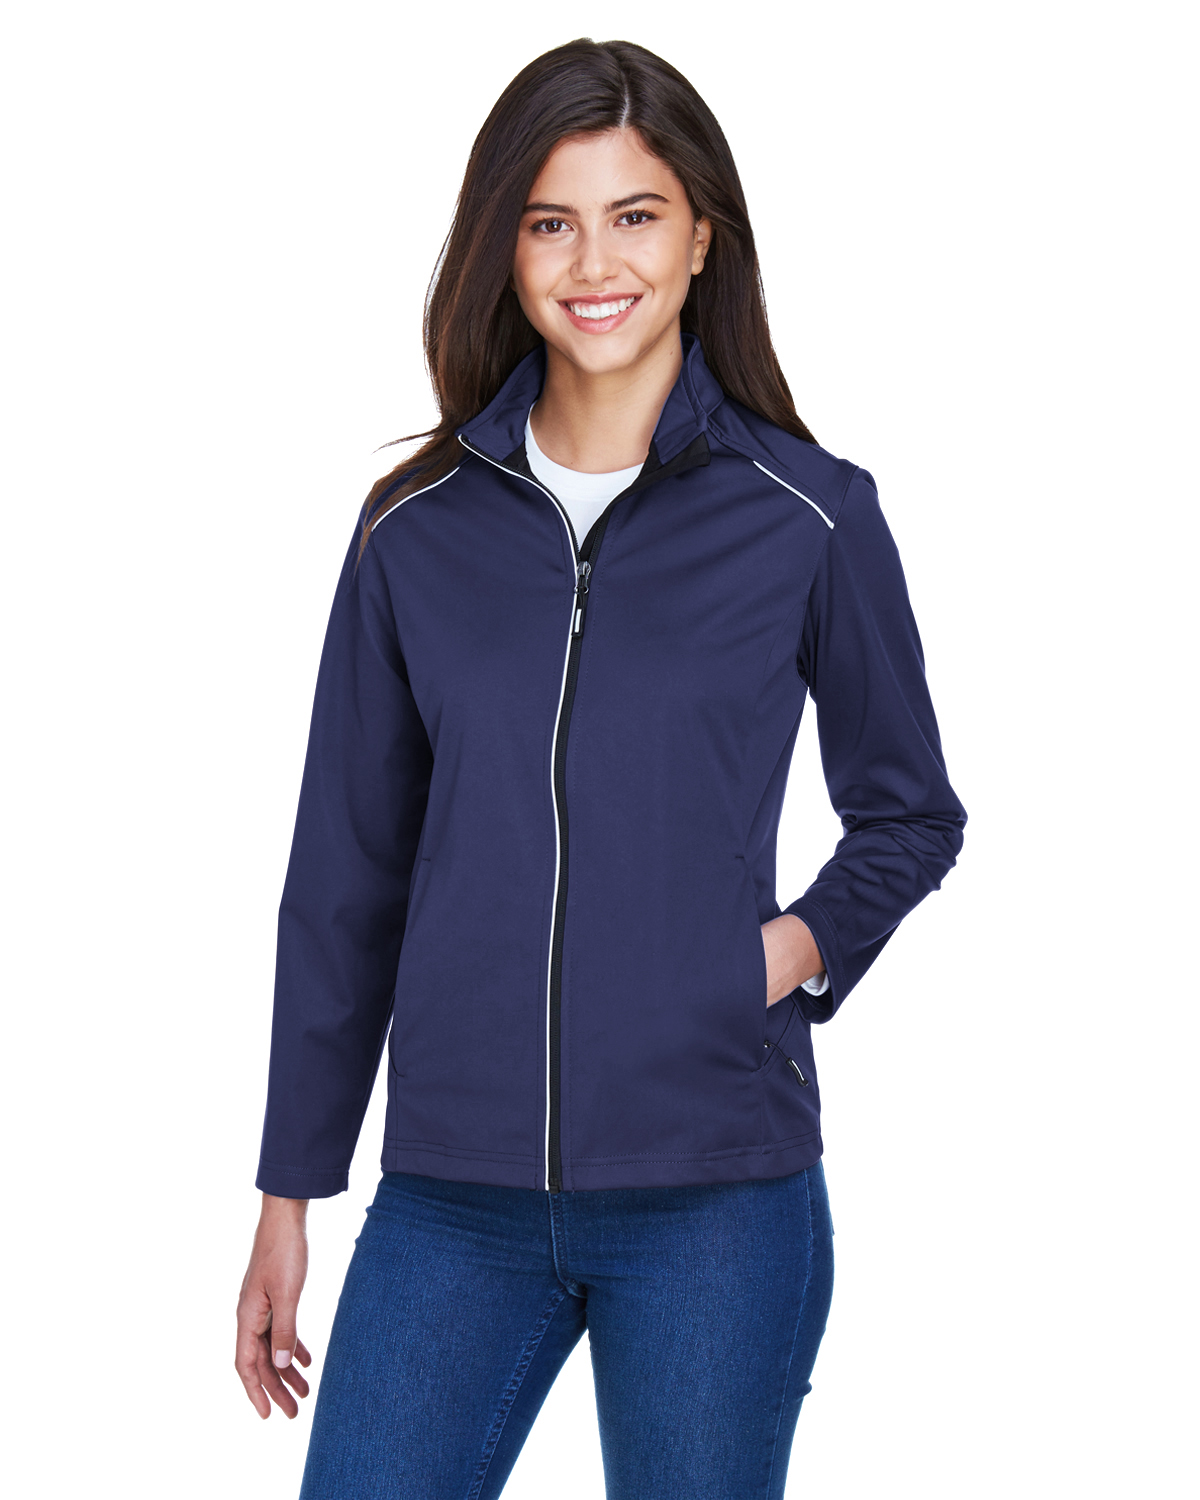 MAS-CE708W Core 365 Ladies' Techno Lite Three-Layer Knit Tech-Shell